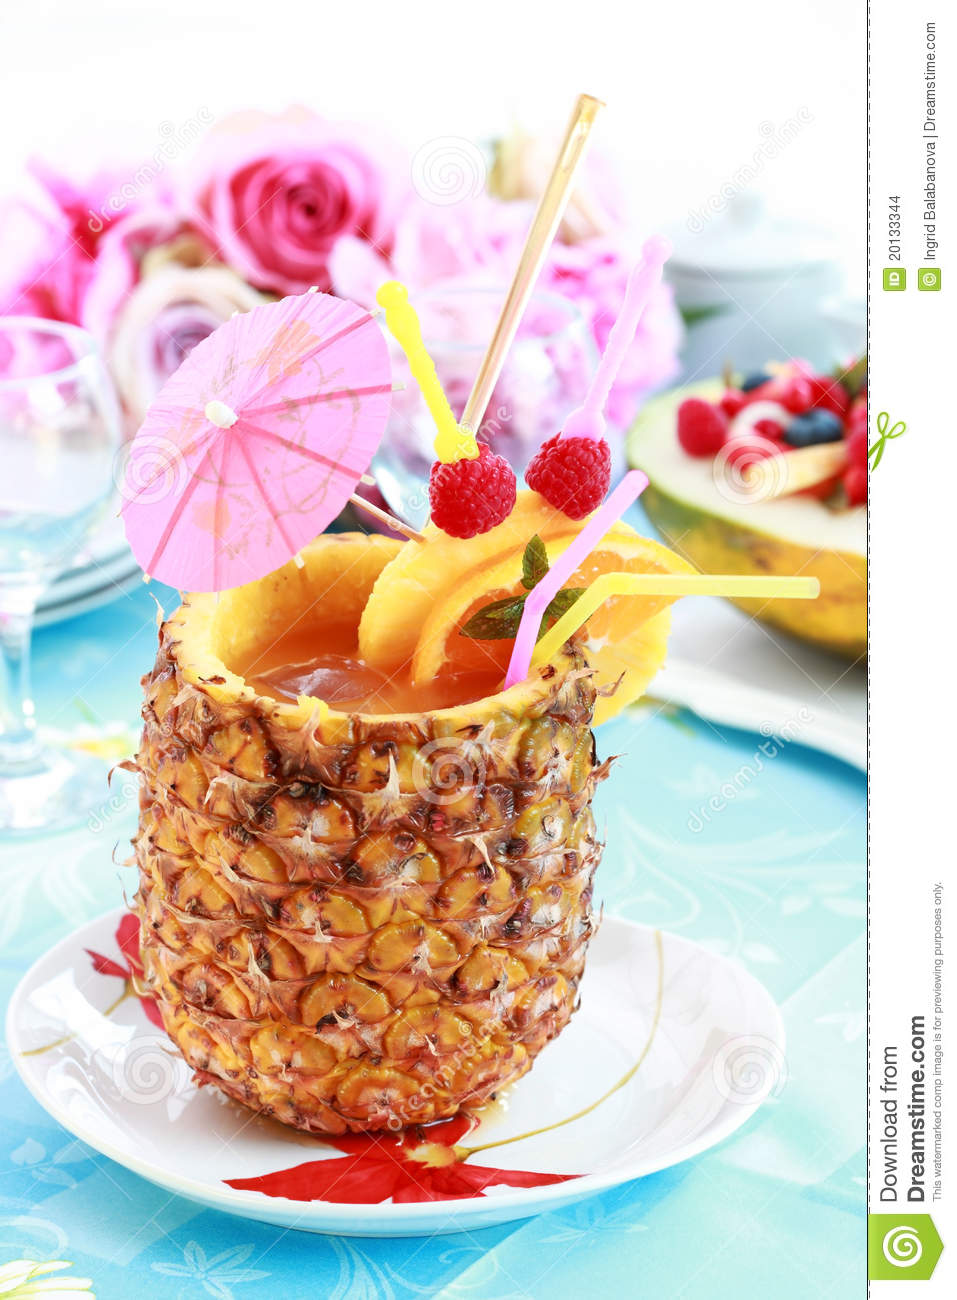 Pineapple Drink Stock Images - Image: 20133344